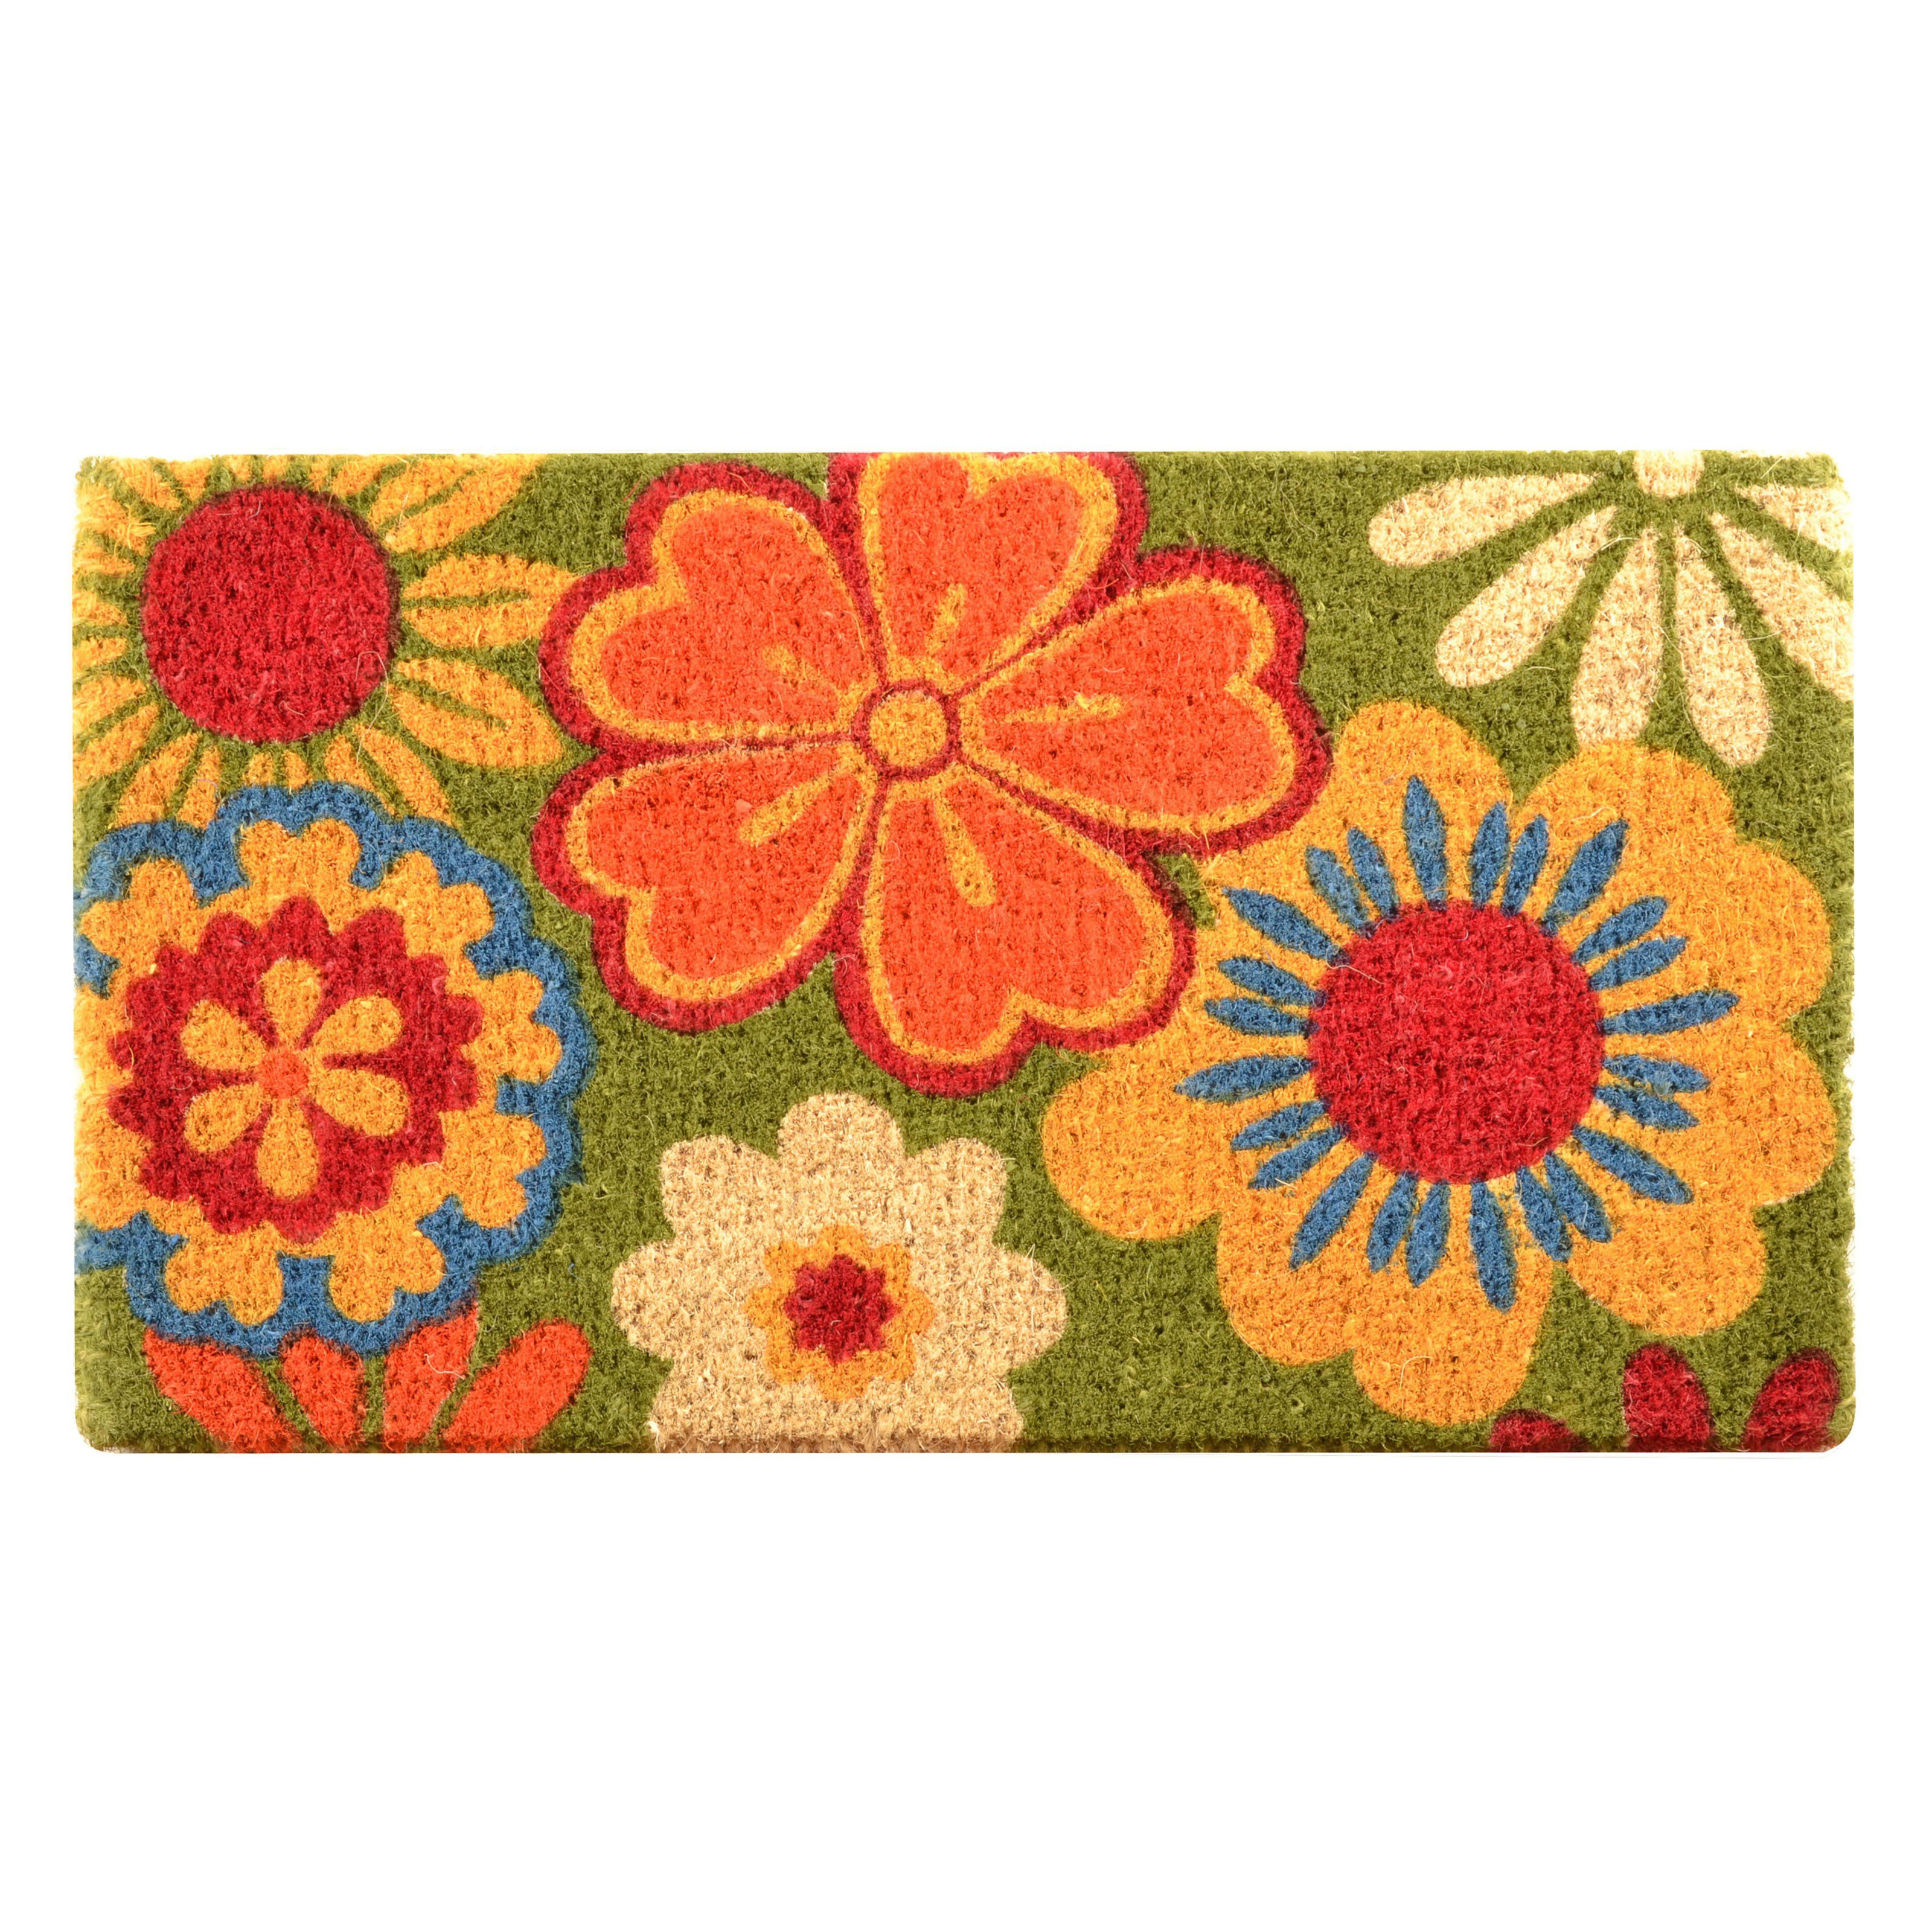 design doormat mat mats fullxfull image unusual cool personalized designs il door coir the retro best winning gift guard collections weather